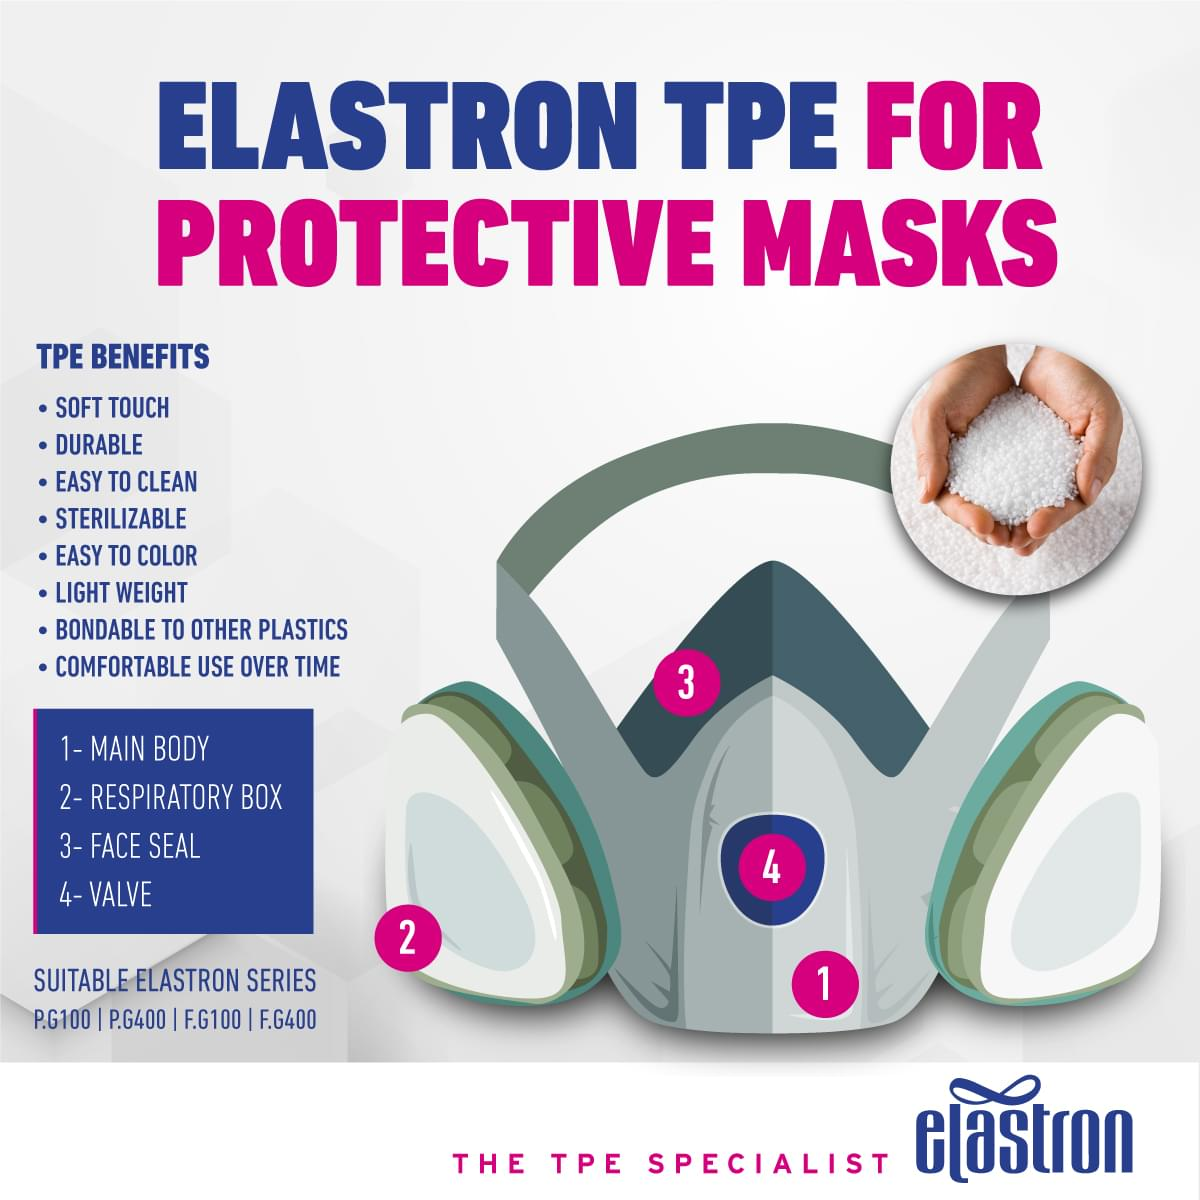 Elastron TPE for Protective Mask Press Release